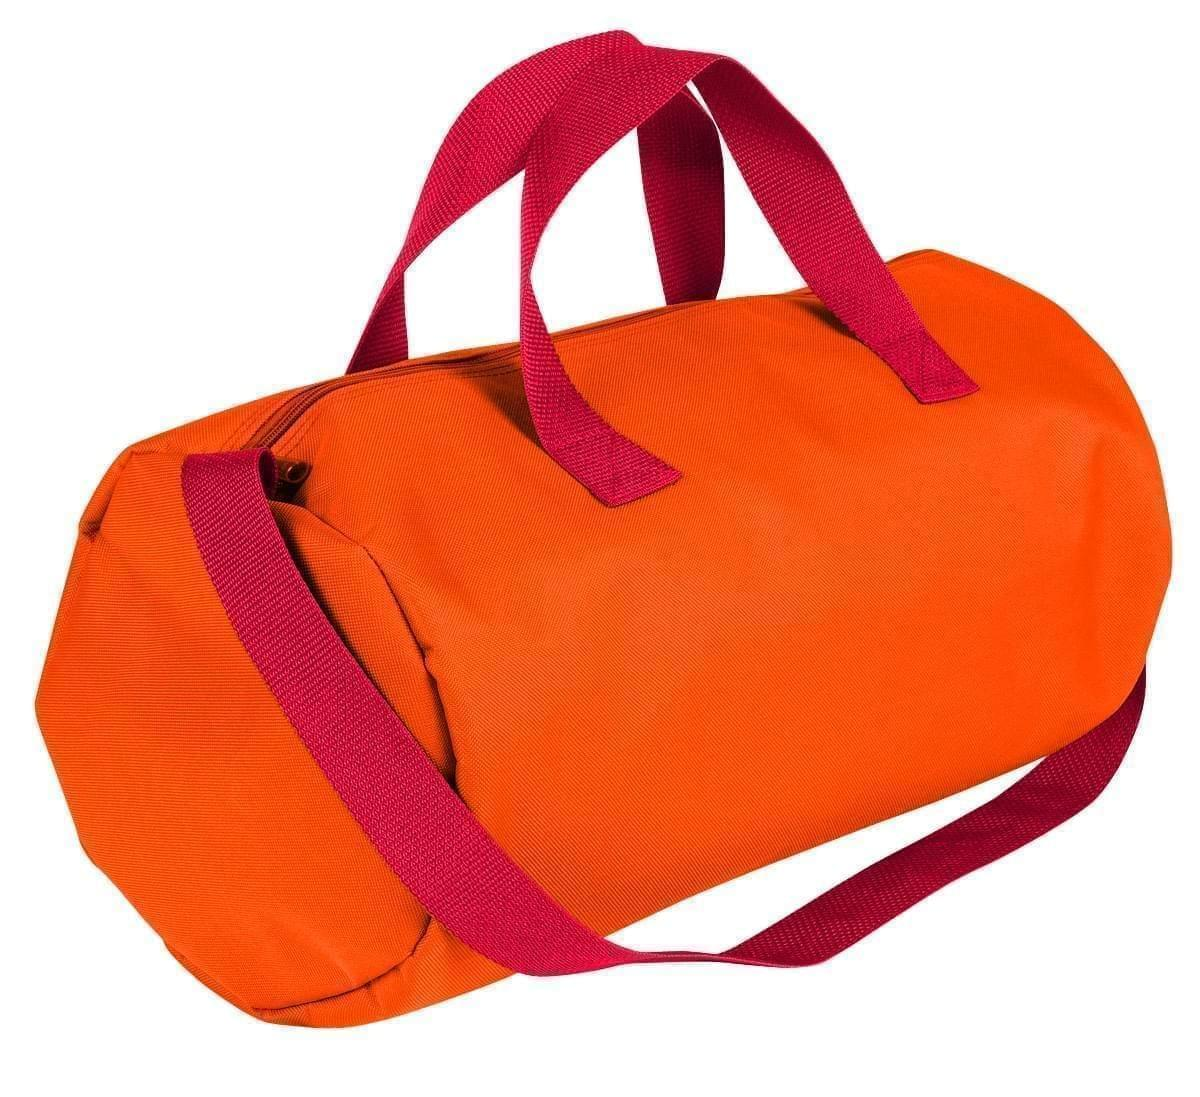 USA Made Nylon Poly Gym Roll Bags, Orange-Red, ROCX31AAX2